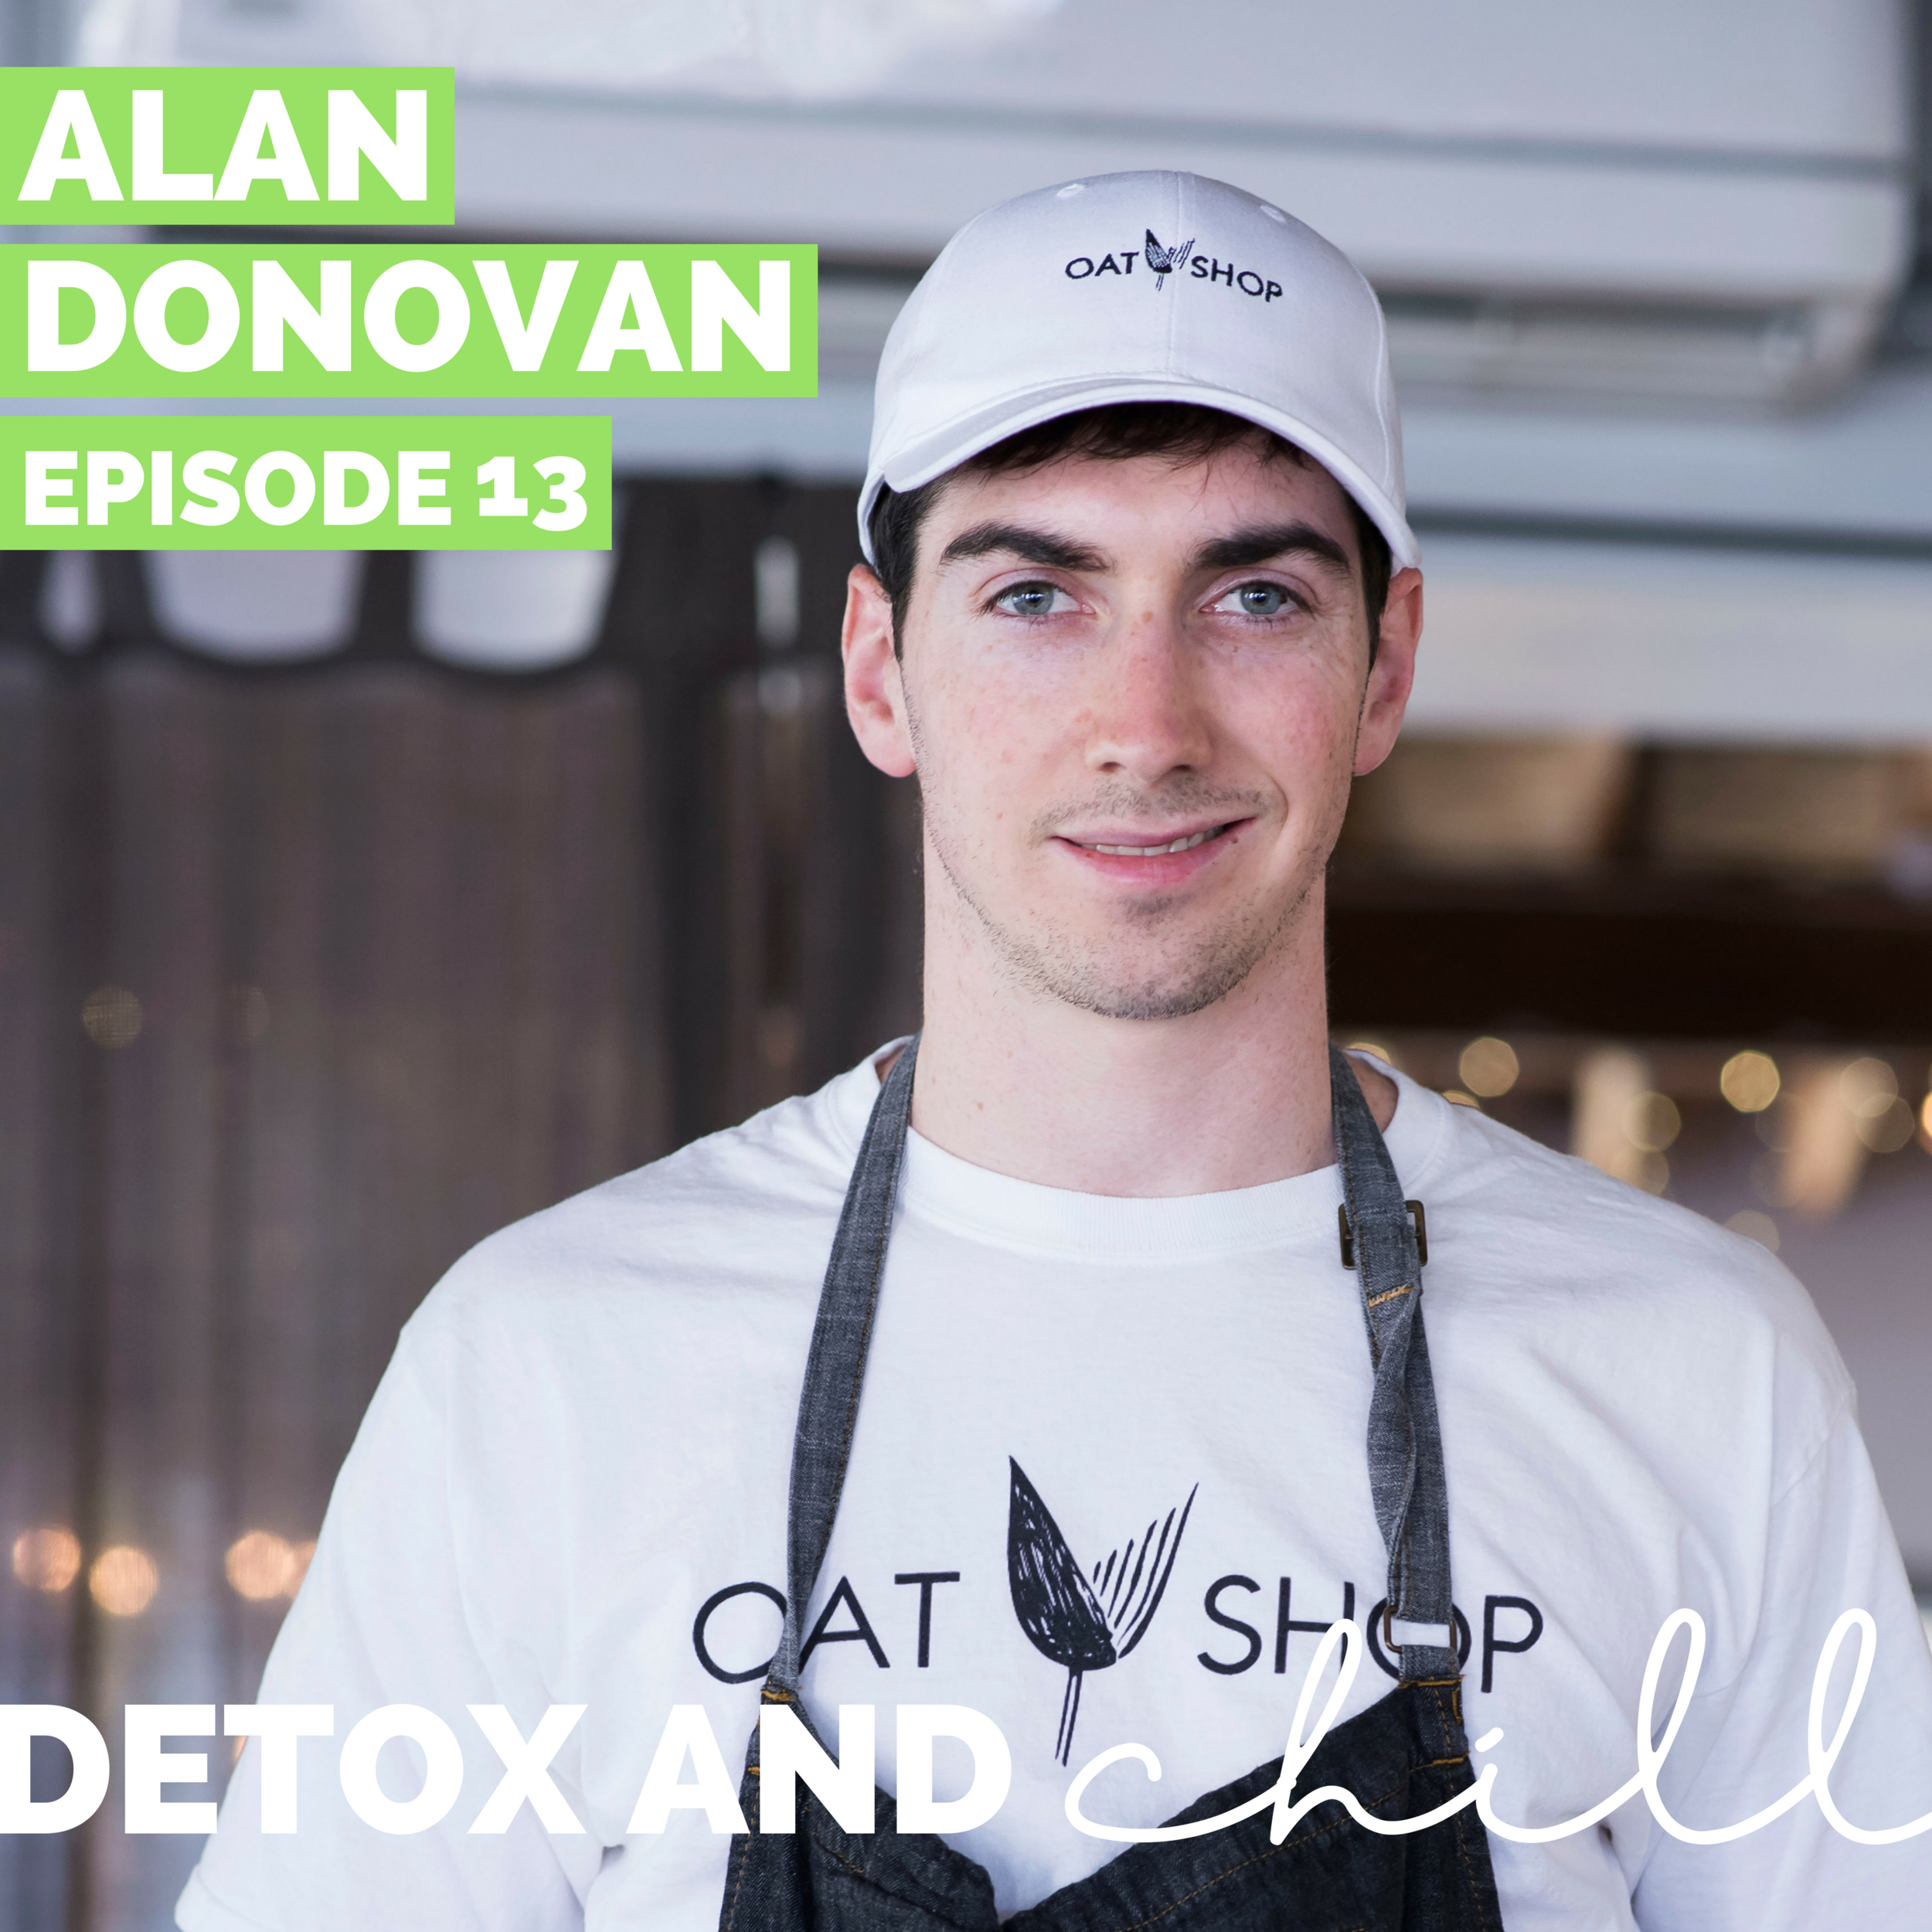 Episode#13: Alan Donovan // Founderof The Oat Shop // Starting a Business: 101 - Hi Fam! Happy Fridayyyy we made it! We are back with ALL OUT AUGUST for ya, and this is a goooood one. Do you guys like oatmeal? Then this is the episode for you.Today, Alan shares his story of leaving a prominent Finance position in D.C. and starting the amazing Oat Shop in Davis Square here in Cambridge. We get into the NITTY GRITTY of writing a business plan, running your own small business, finding a brick and mortar location for your business, and the growth he's experienced -- we even talk about our favorite topic, money honeyyy.Alan is such an inspiration to us and really walks the walk. We are so thankful for him taking the time for this interview! If you need any catering done in the city, look no further! The Oat Shop will seriously have you covered and your co-workers will THANK you!If you head to the Oatshop, tell them that Detox & Chill sent you, and definitely try the sriracha bowl <3HAPPY WEEKEND FAM!Meg & Beck